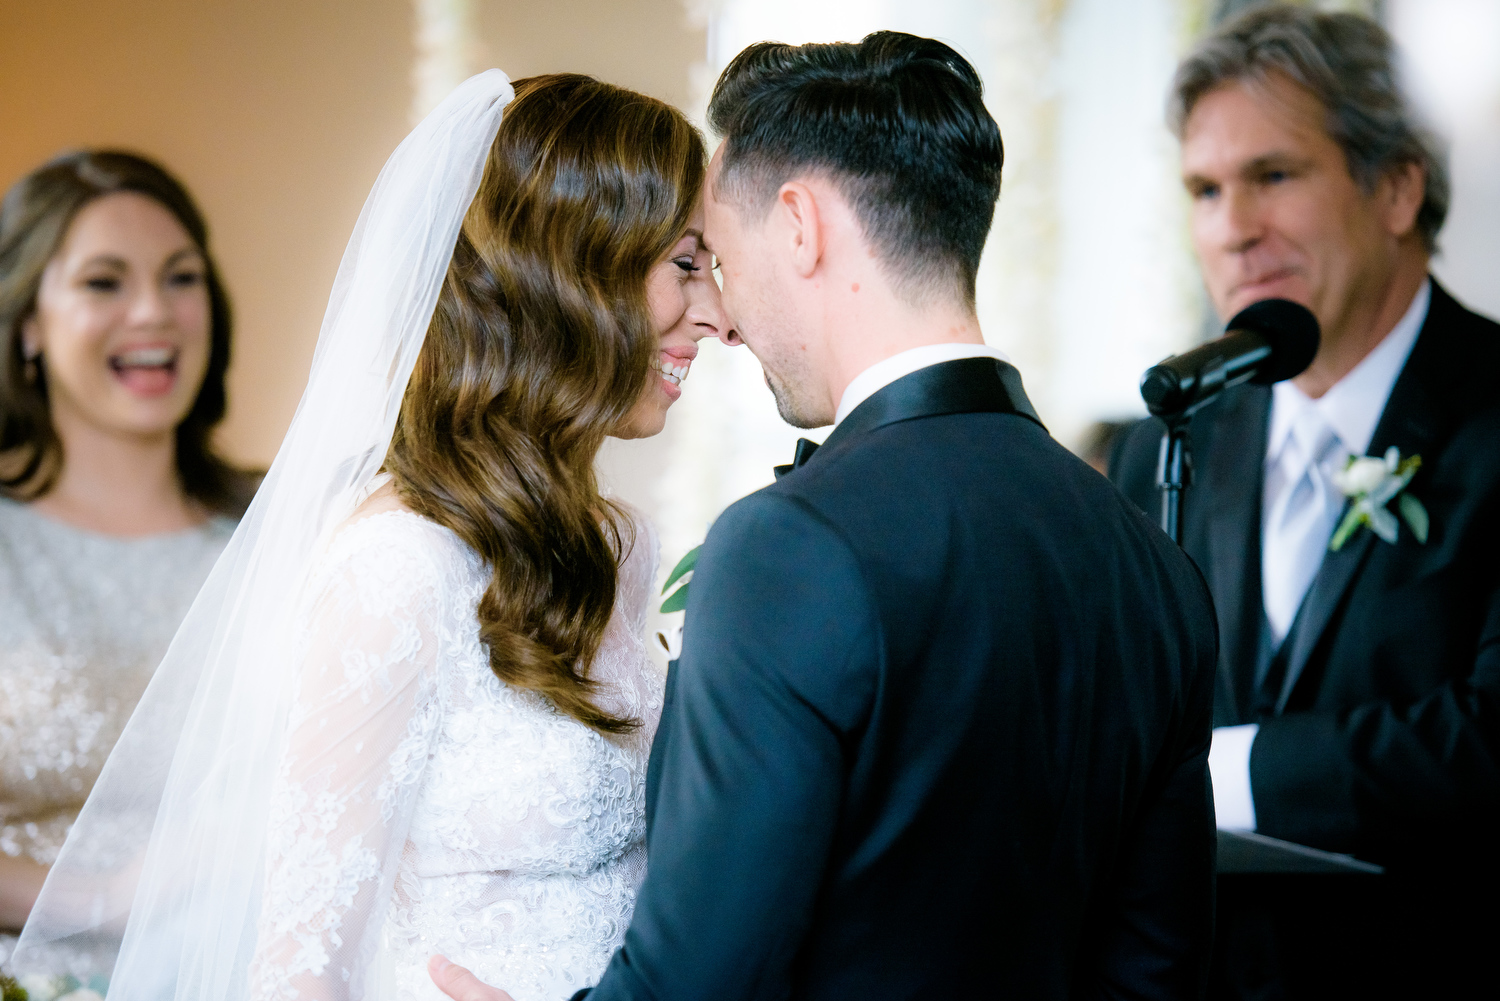 Tender moment between bride and groom during their Thompson Chicago wedding.